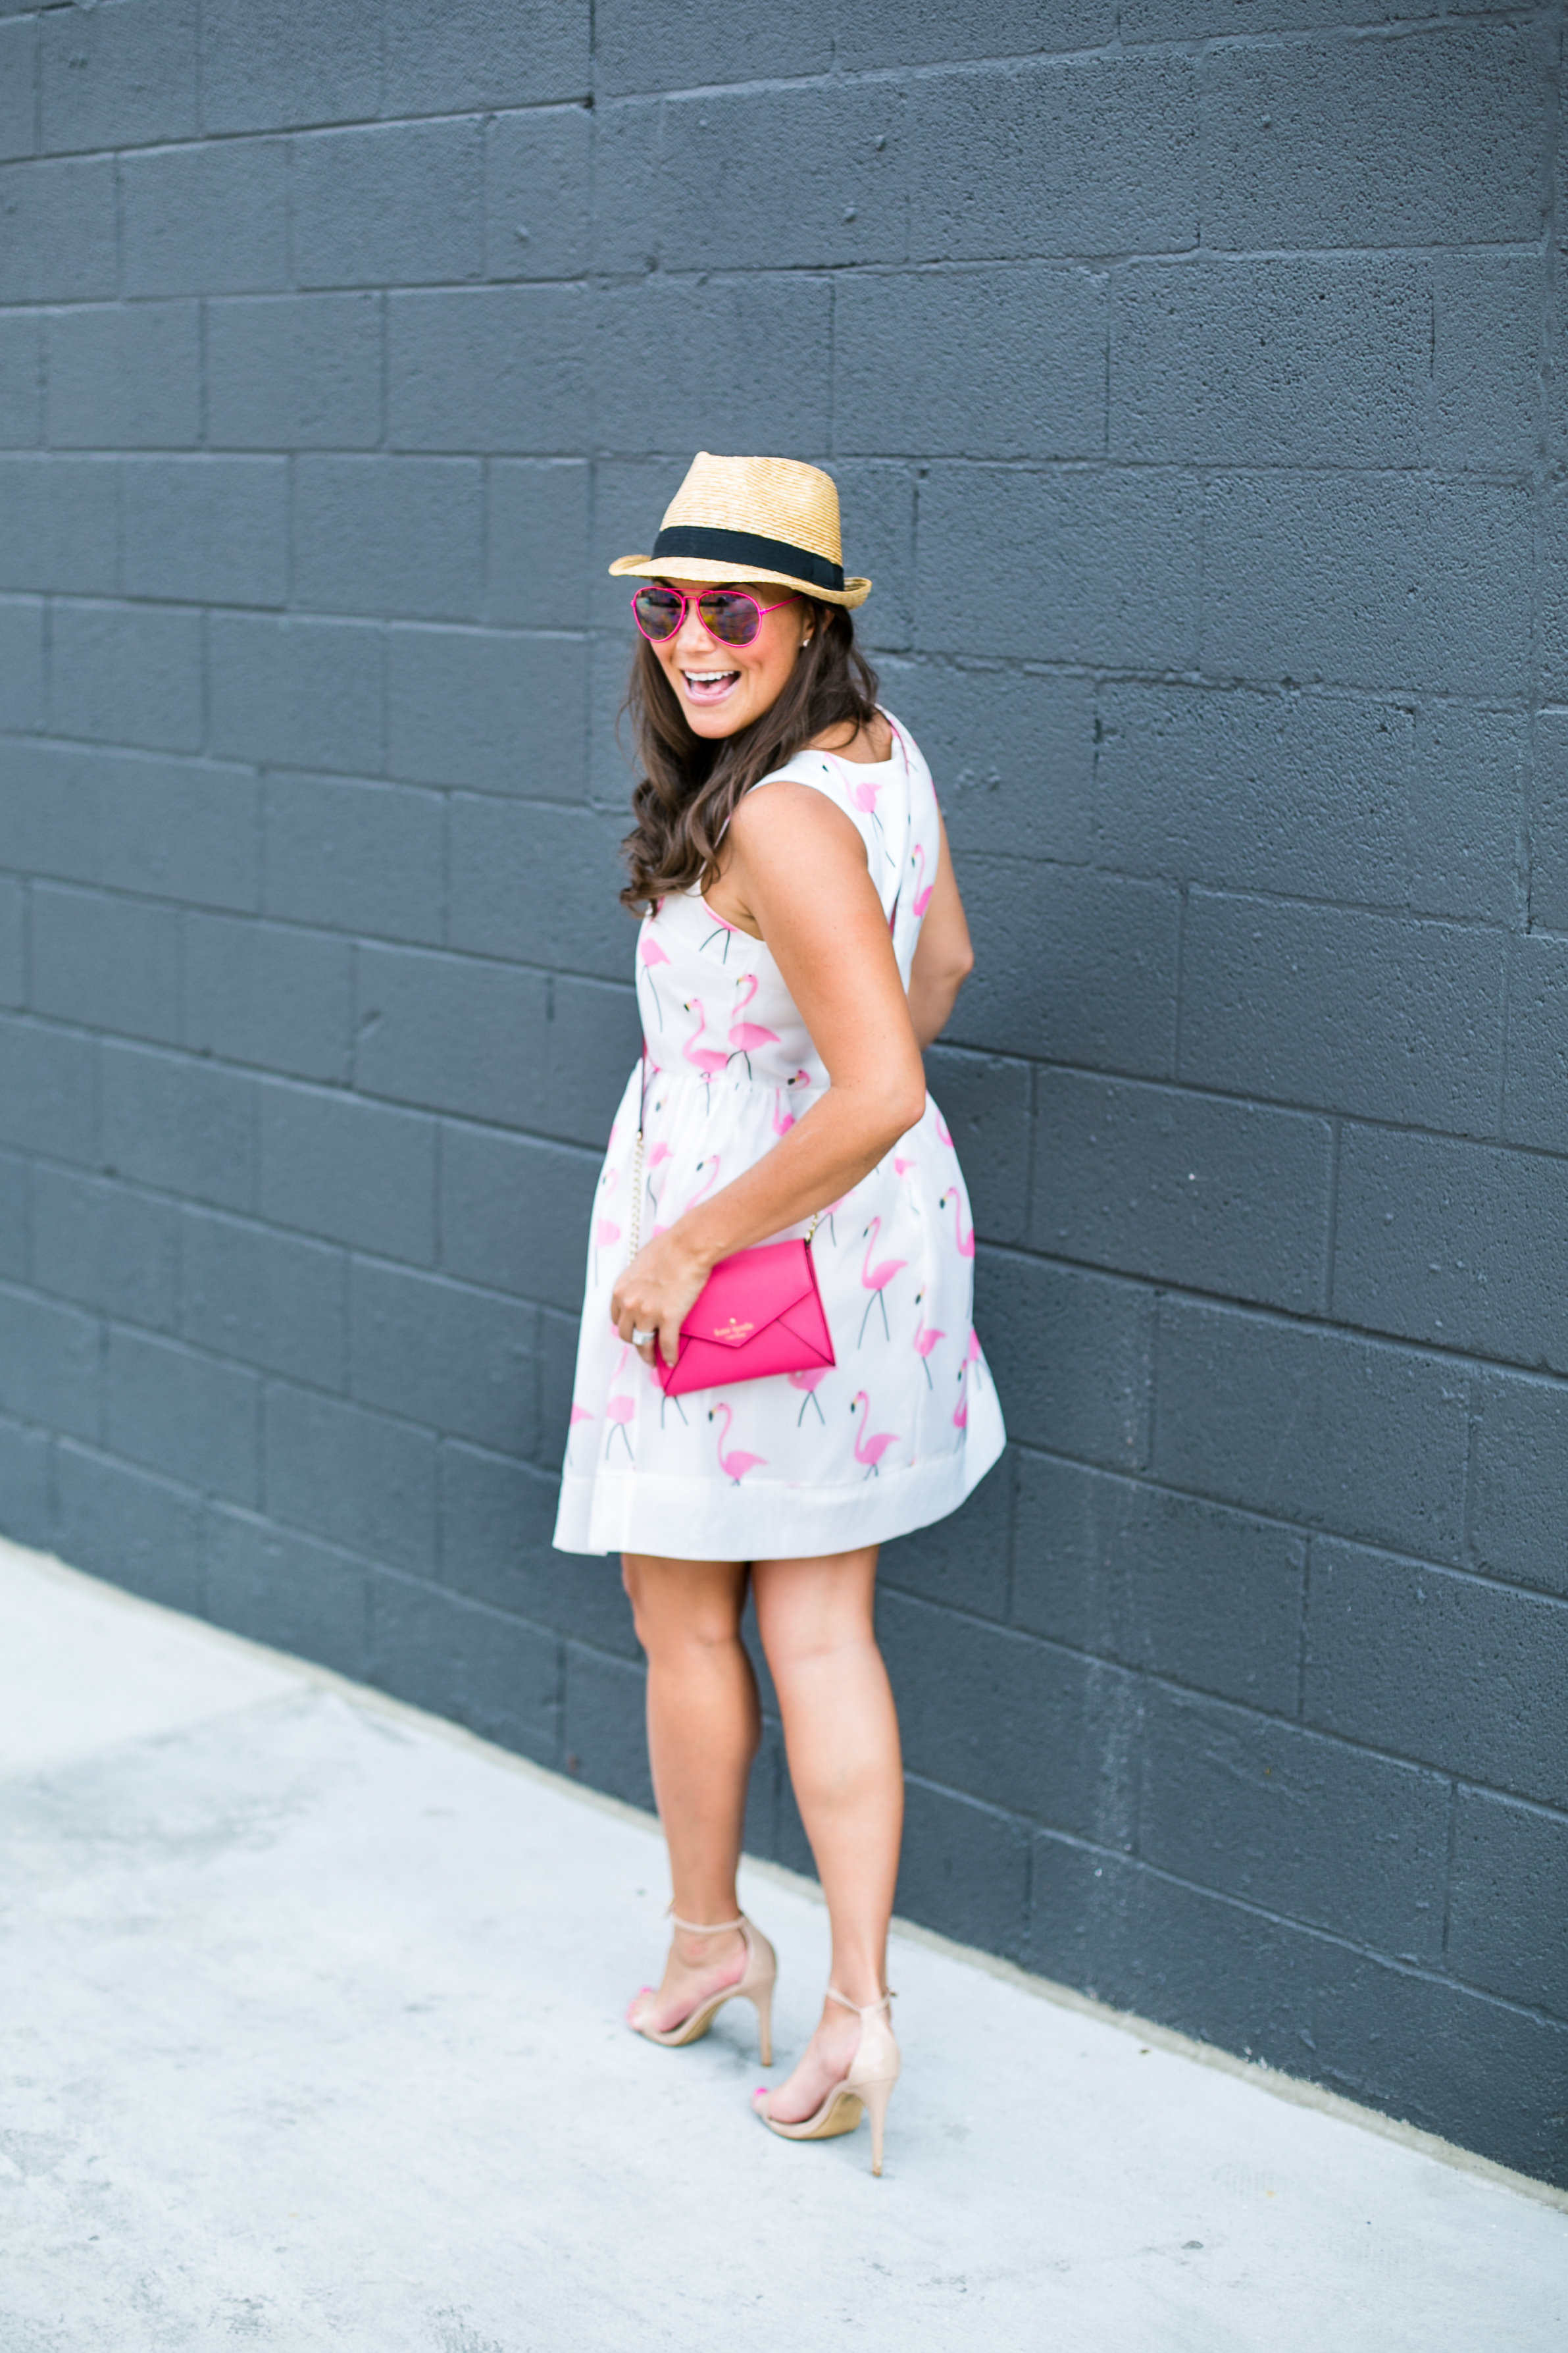 Choies   Dress    similar  here  and  here  //  Kate Spade Purse  //  Steve Madden Pumps  // Panama Hat (old) similar  here   here  and  here  // Sunnies (from  Gracie's ) similar  here  and  here